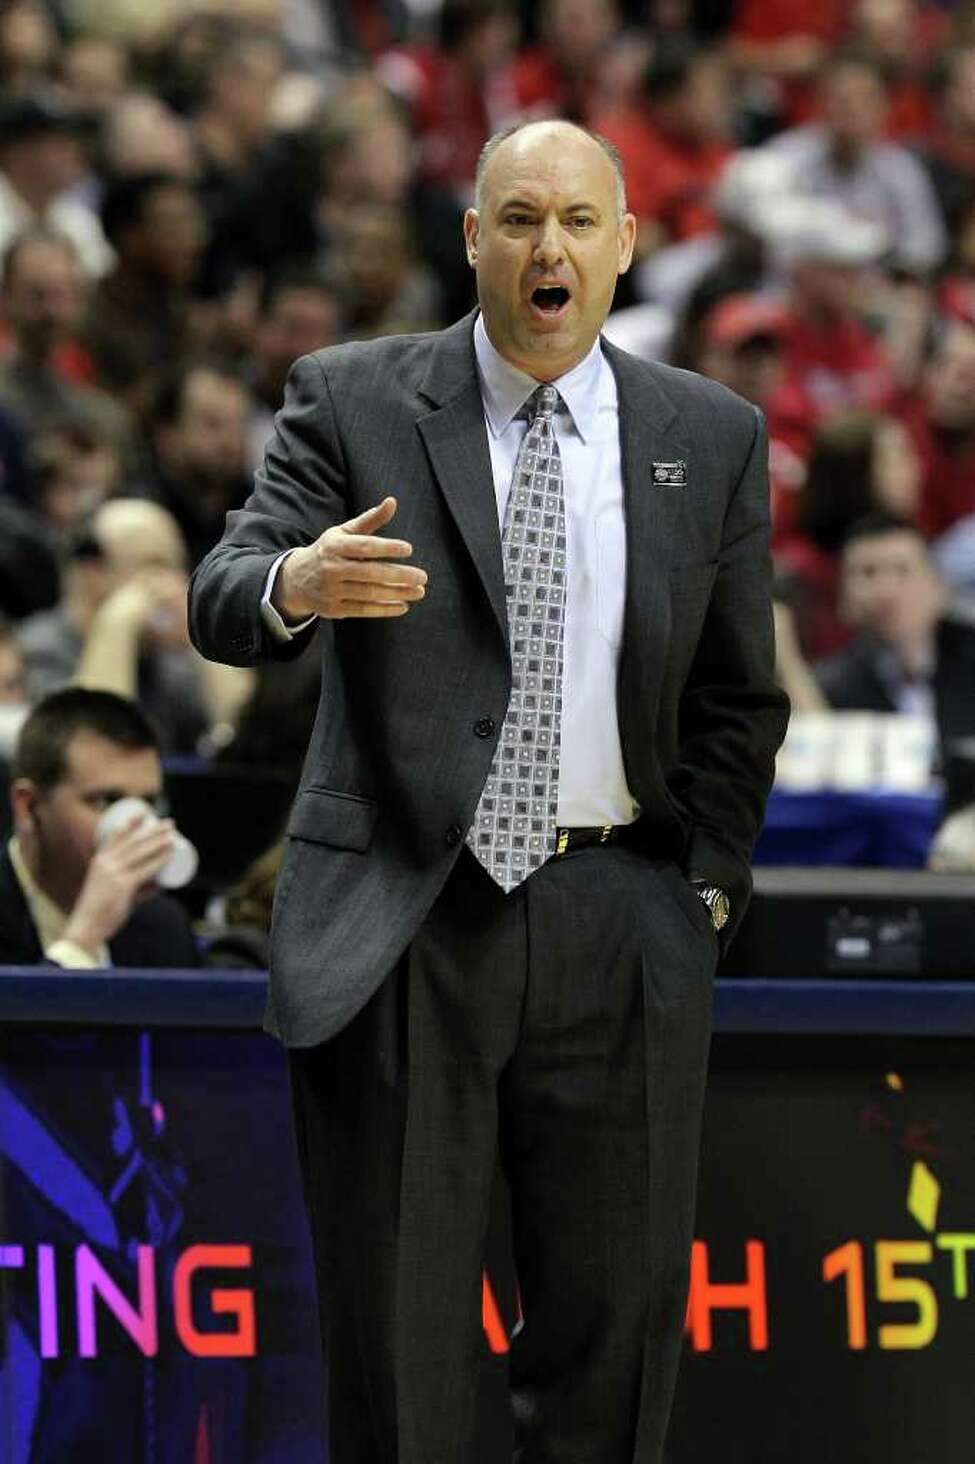 INDIANAPOLIS, IN - MARCH 13: Head coach Ed DeChellis of the Penn State Nittany Lions coaches against the Ohio State Buckeyes during the championship game of the 2011 Big Ten Men's Basketball Tournament at Conseco Fieldhouse on March 13, 2011 in Indianapolis, Indiana. Ohio State won 71-60. (Photo by Andy Lyons/Getty Images) *** Local Caption *** Ed DeChellis